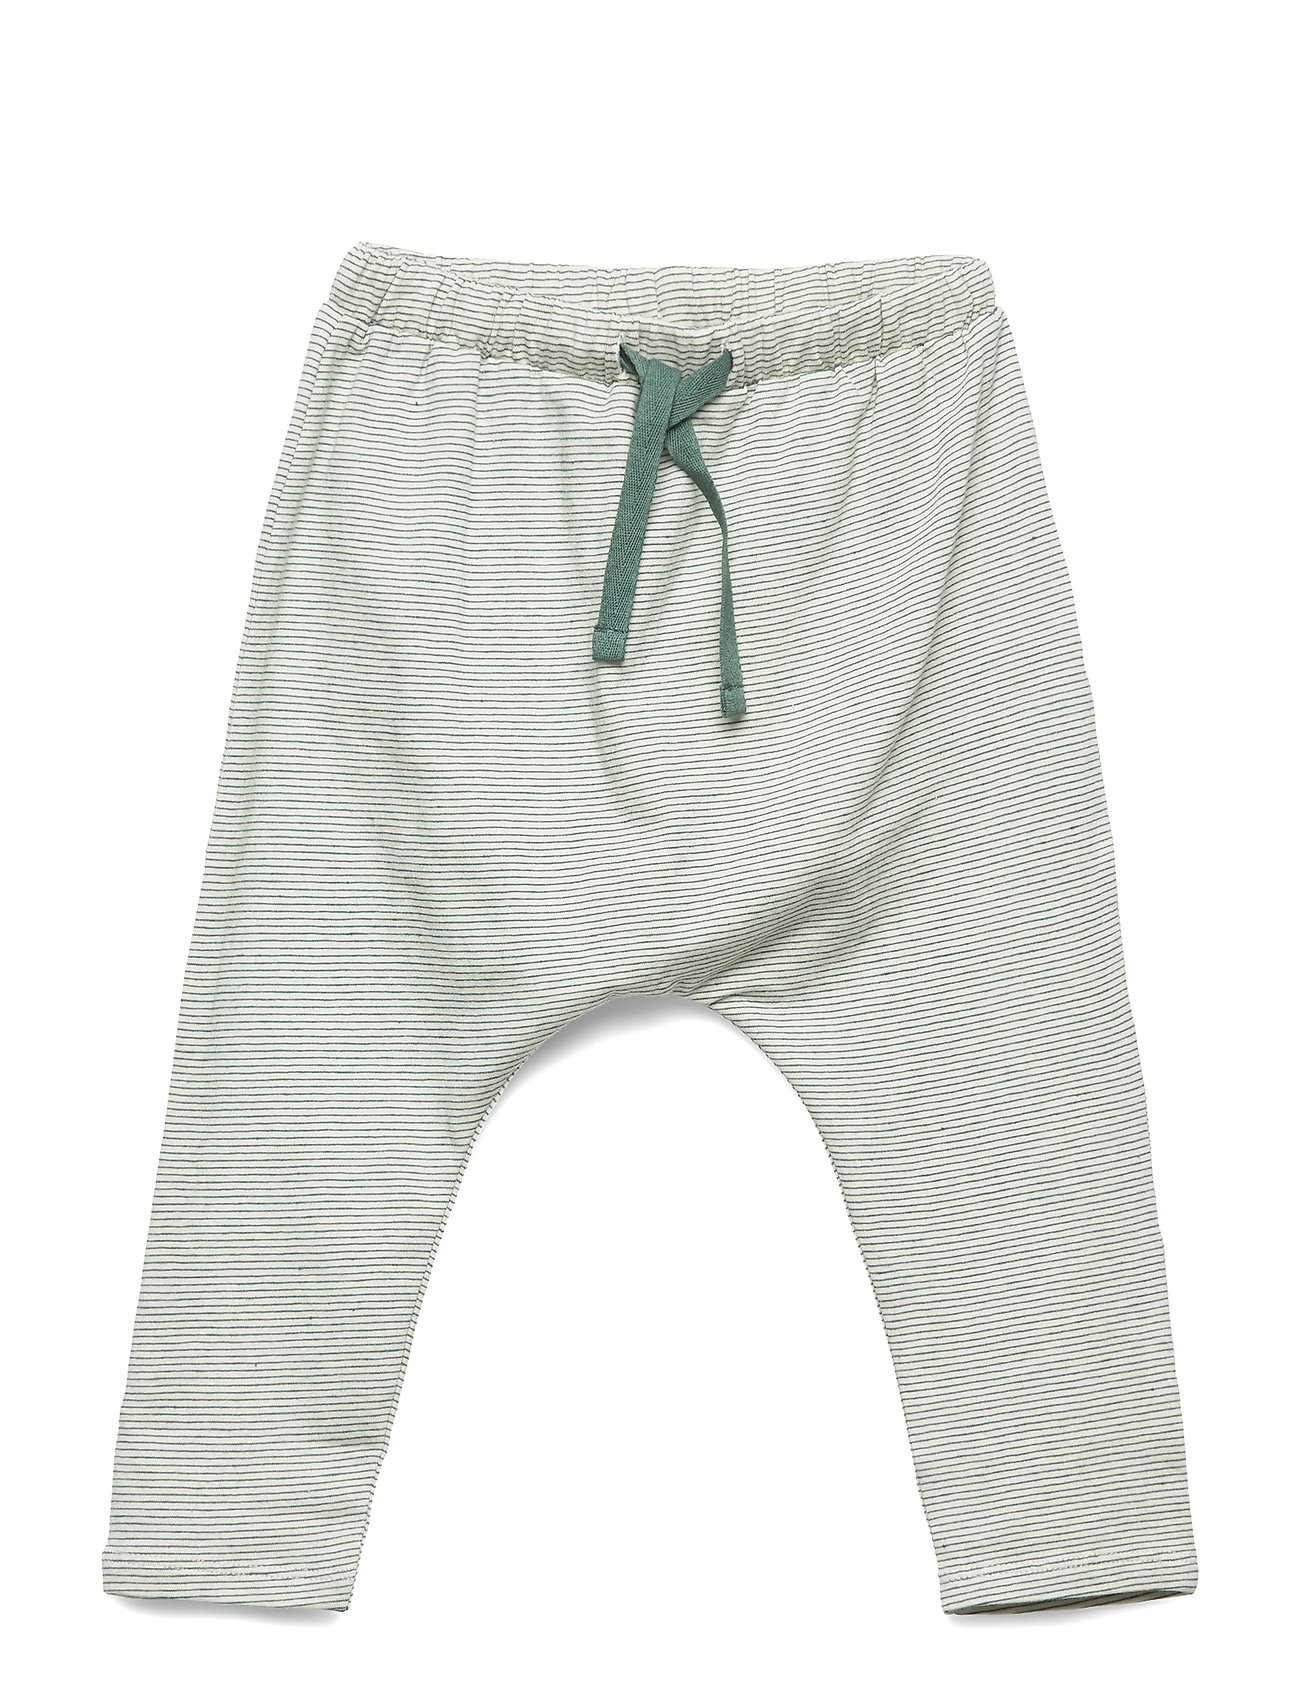 Soft Gallery Hailey Pants - HUNTER GREEN